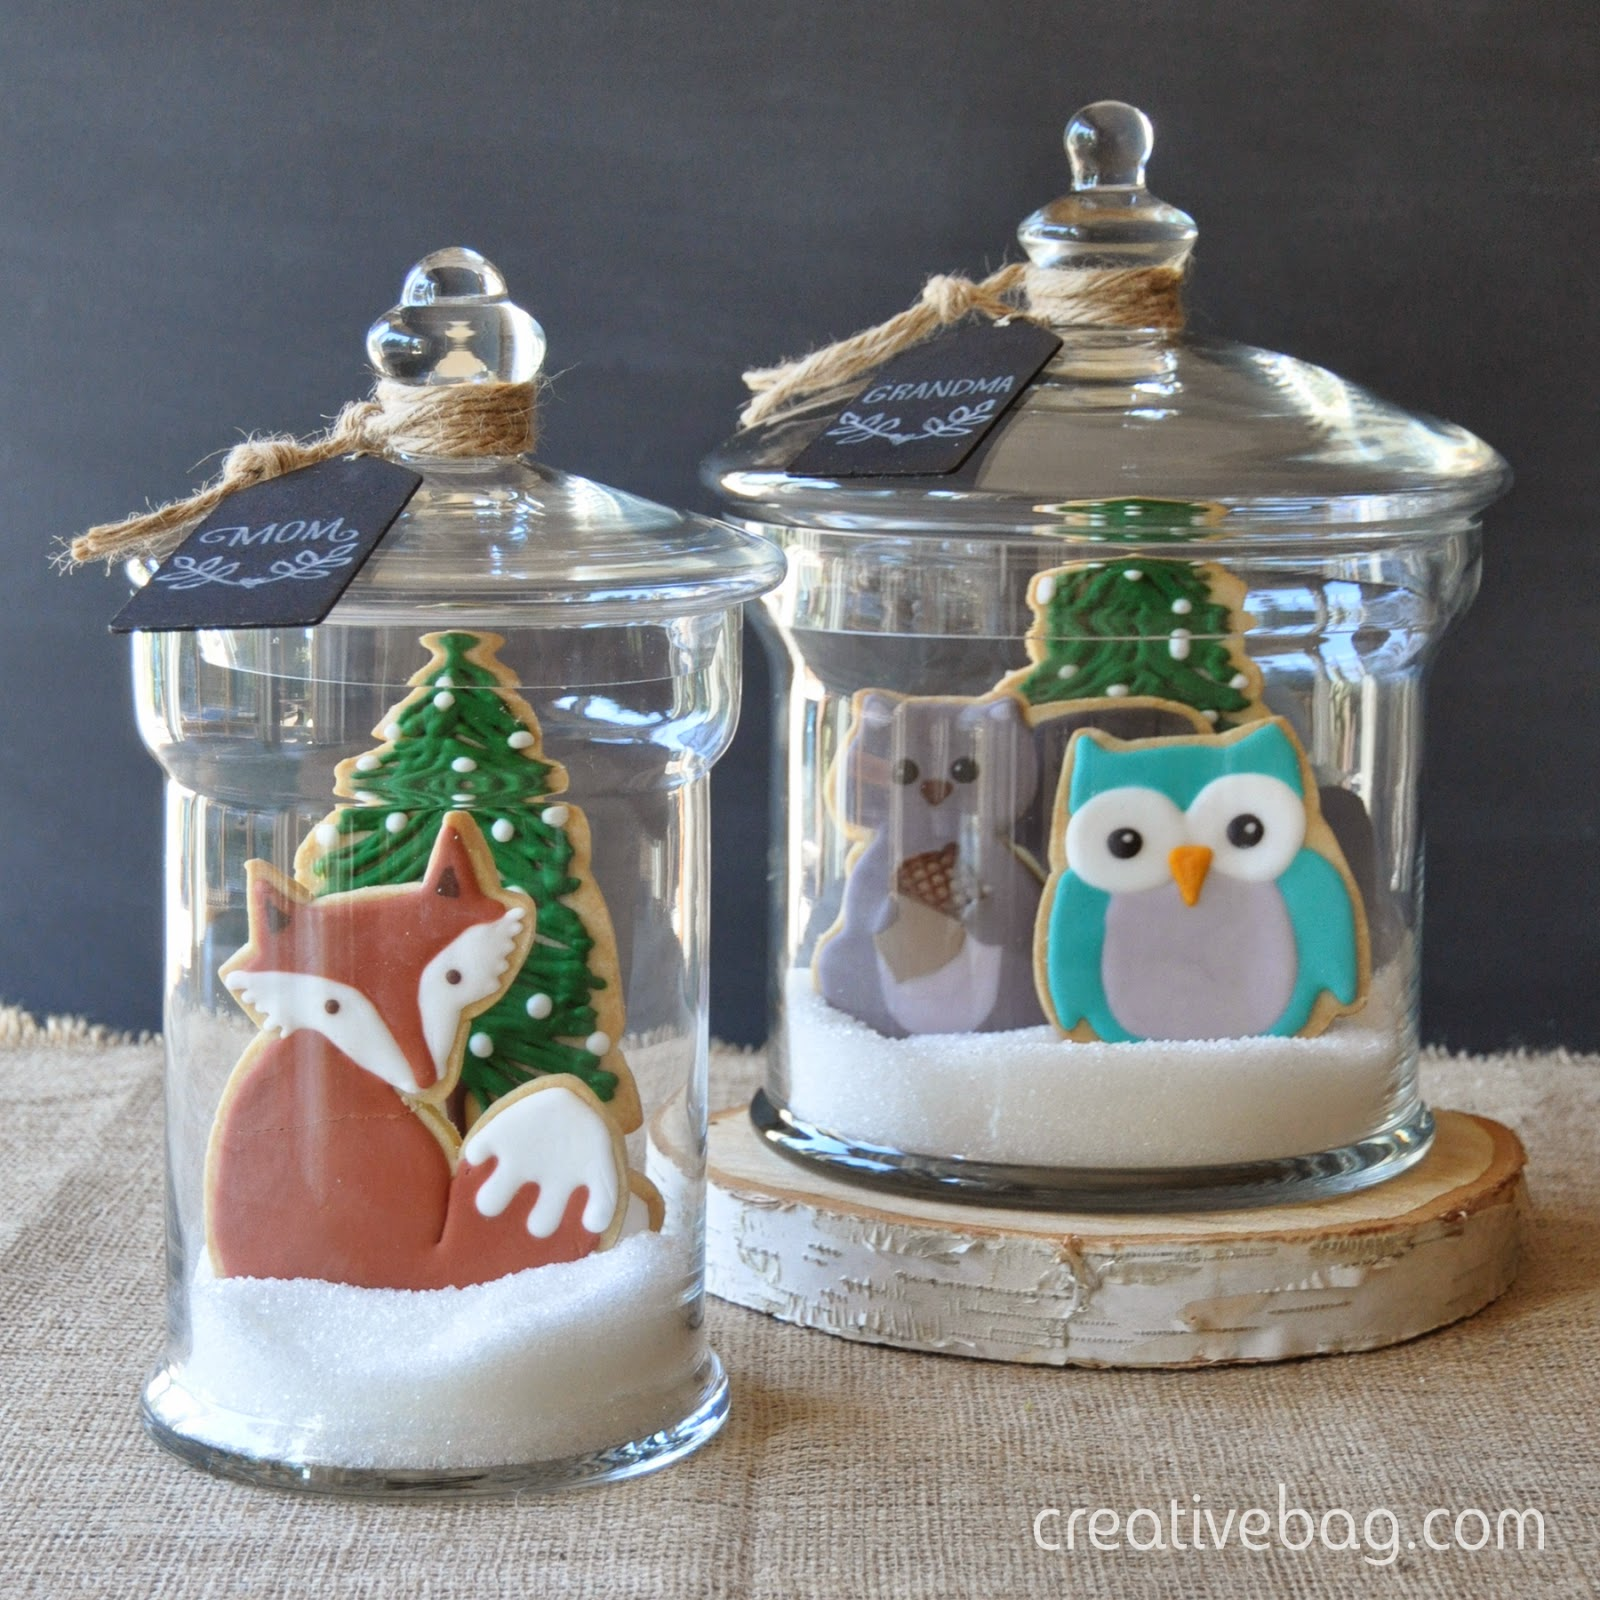 Decorative Cookie Containers The Creative Bag Blog Custom Cookies Displayed In Our